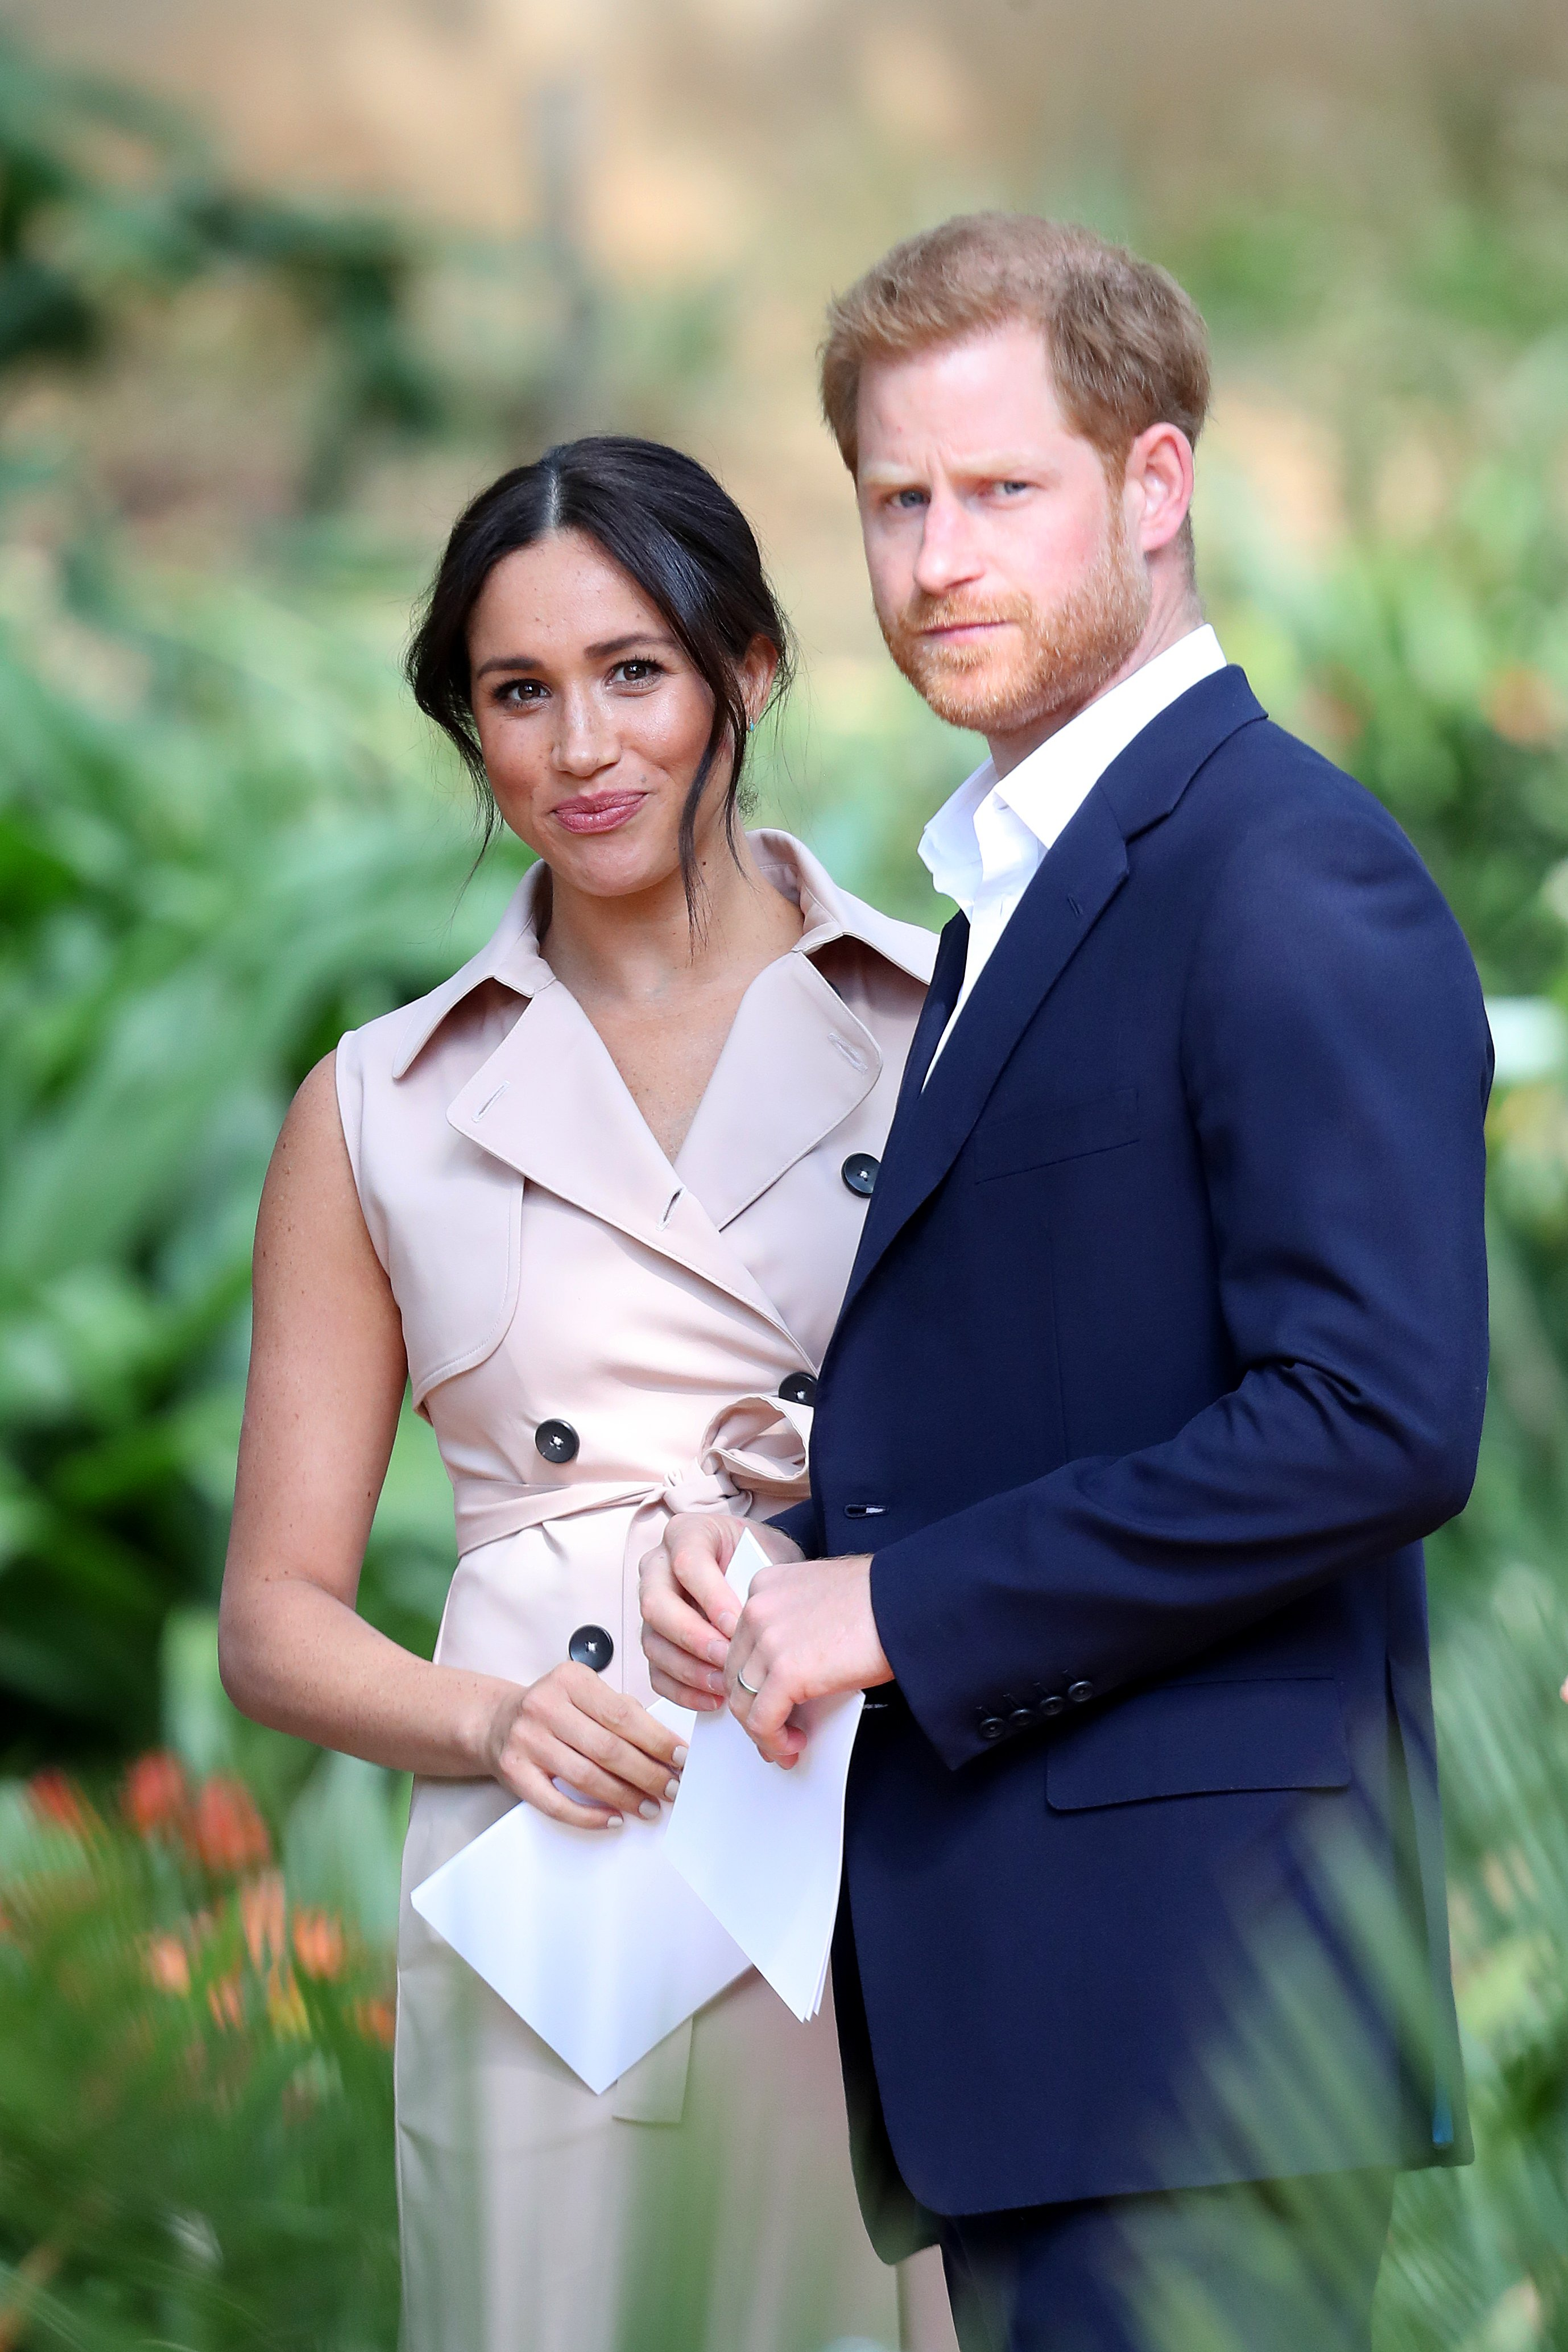 Prince Harry and Meghan Markle attend a Creative Industries and Business Reception on October 02, 2019, in Johannesburg, South Africa. | Source: Getty Images.